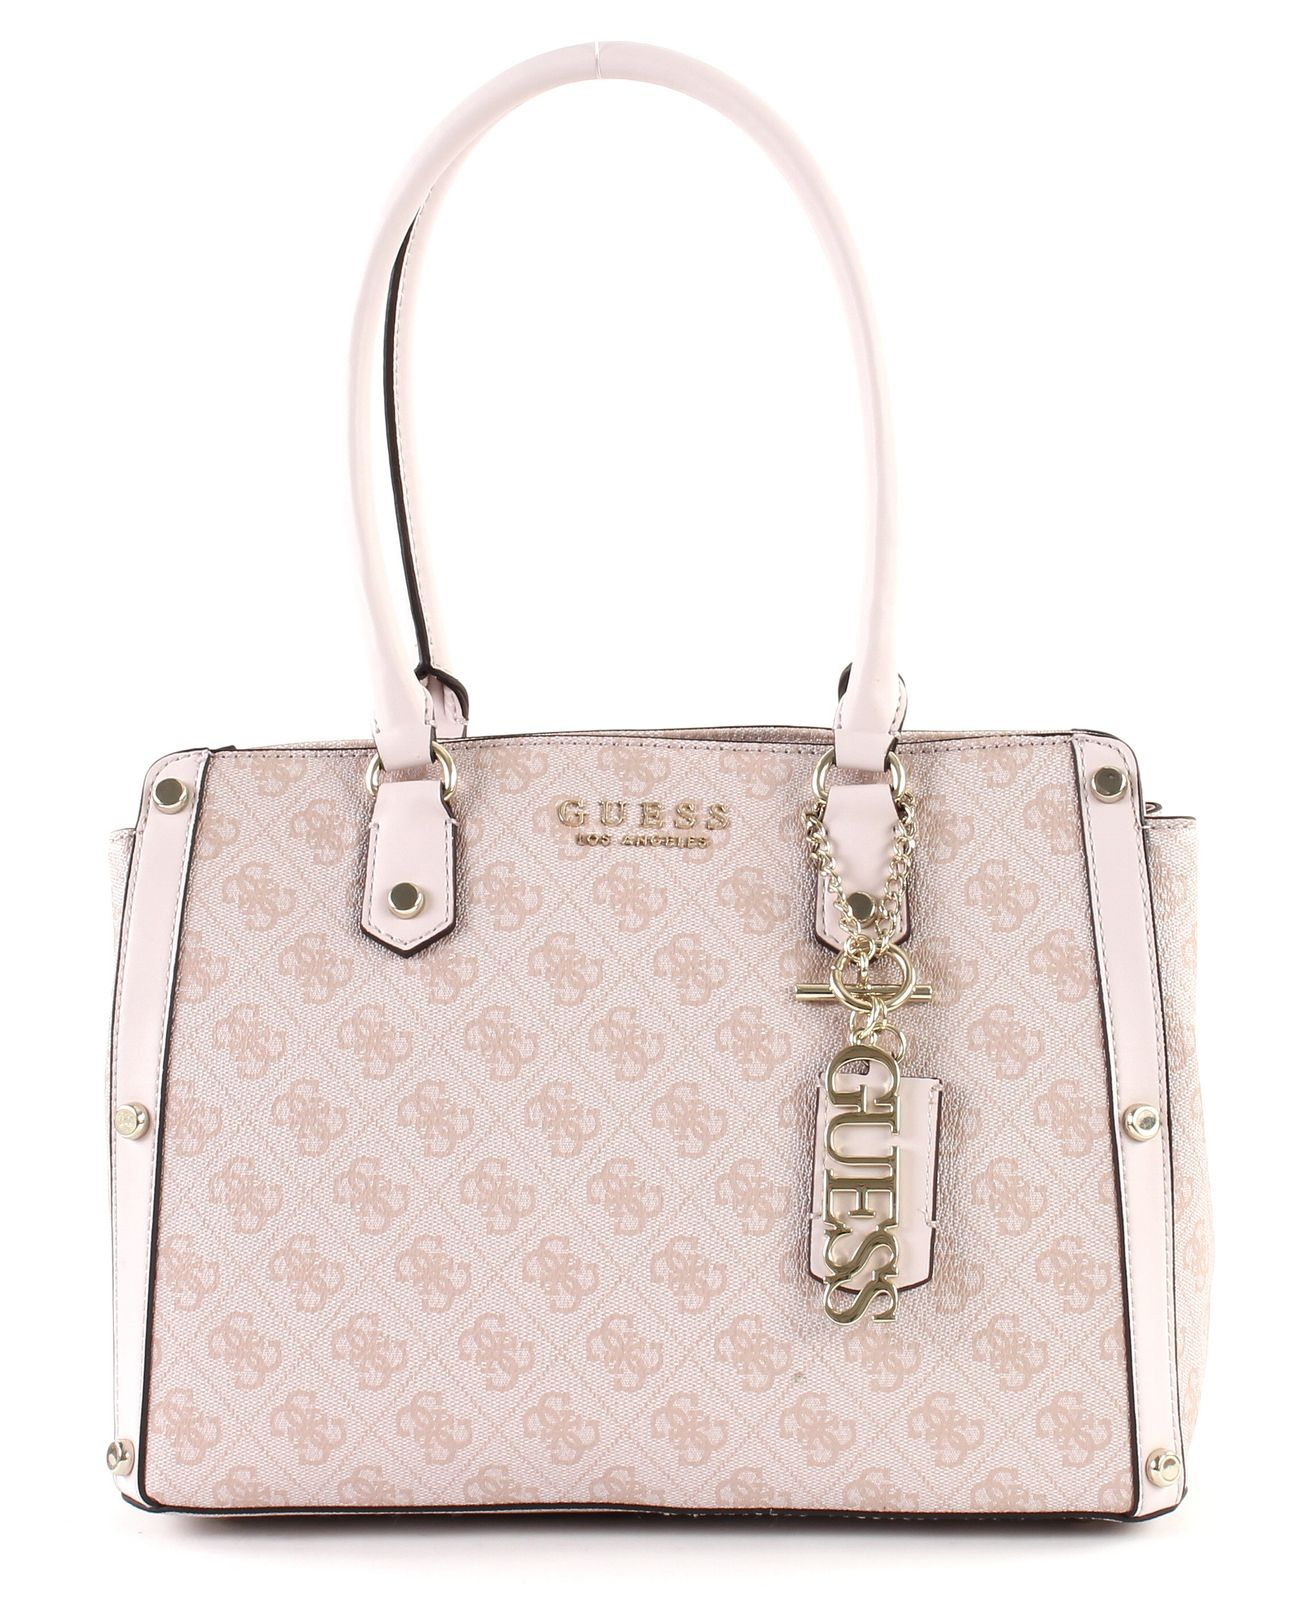 3ea80475f4 GUESS Shoulder Bag Florence Medium Satchel Rose